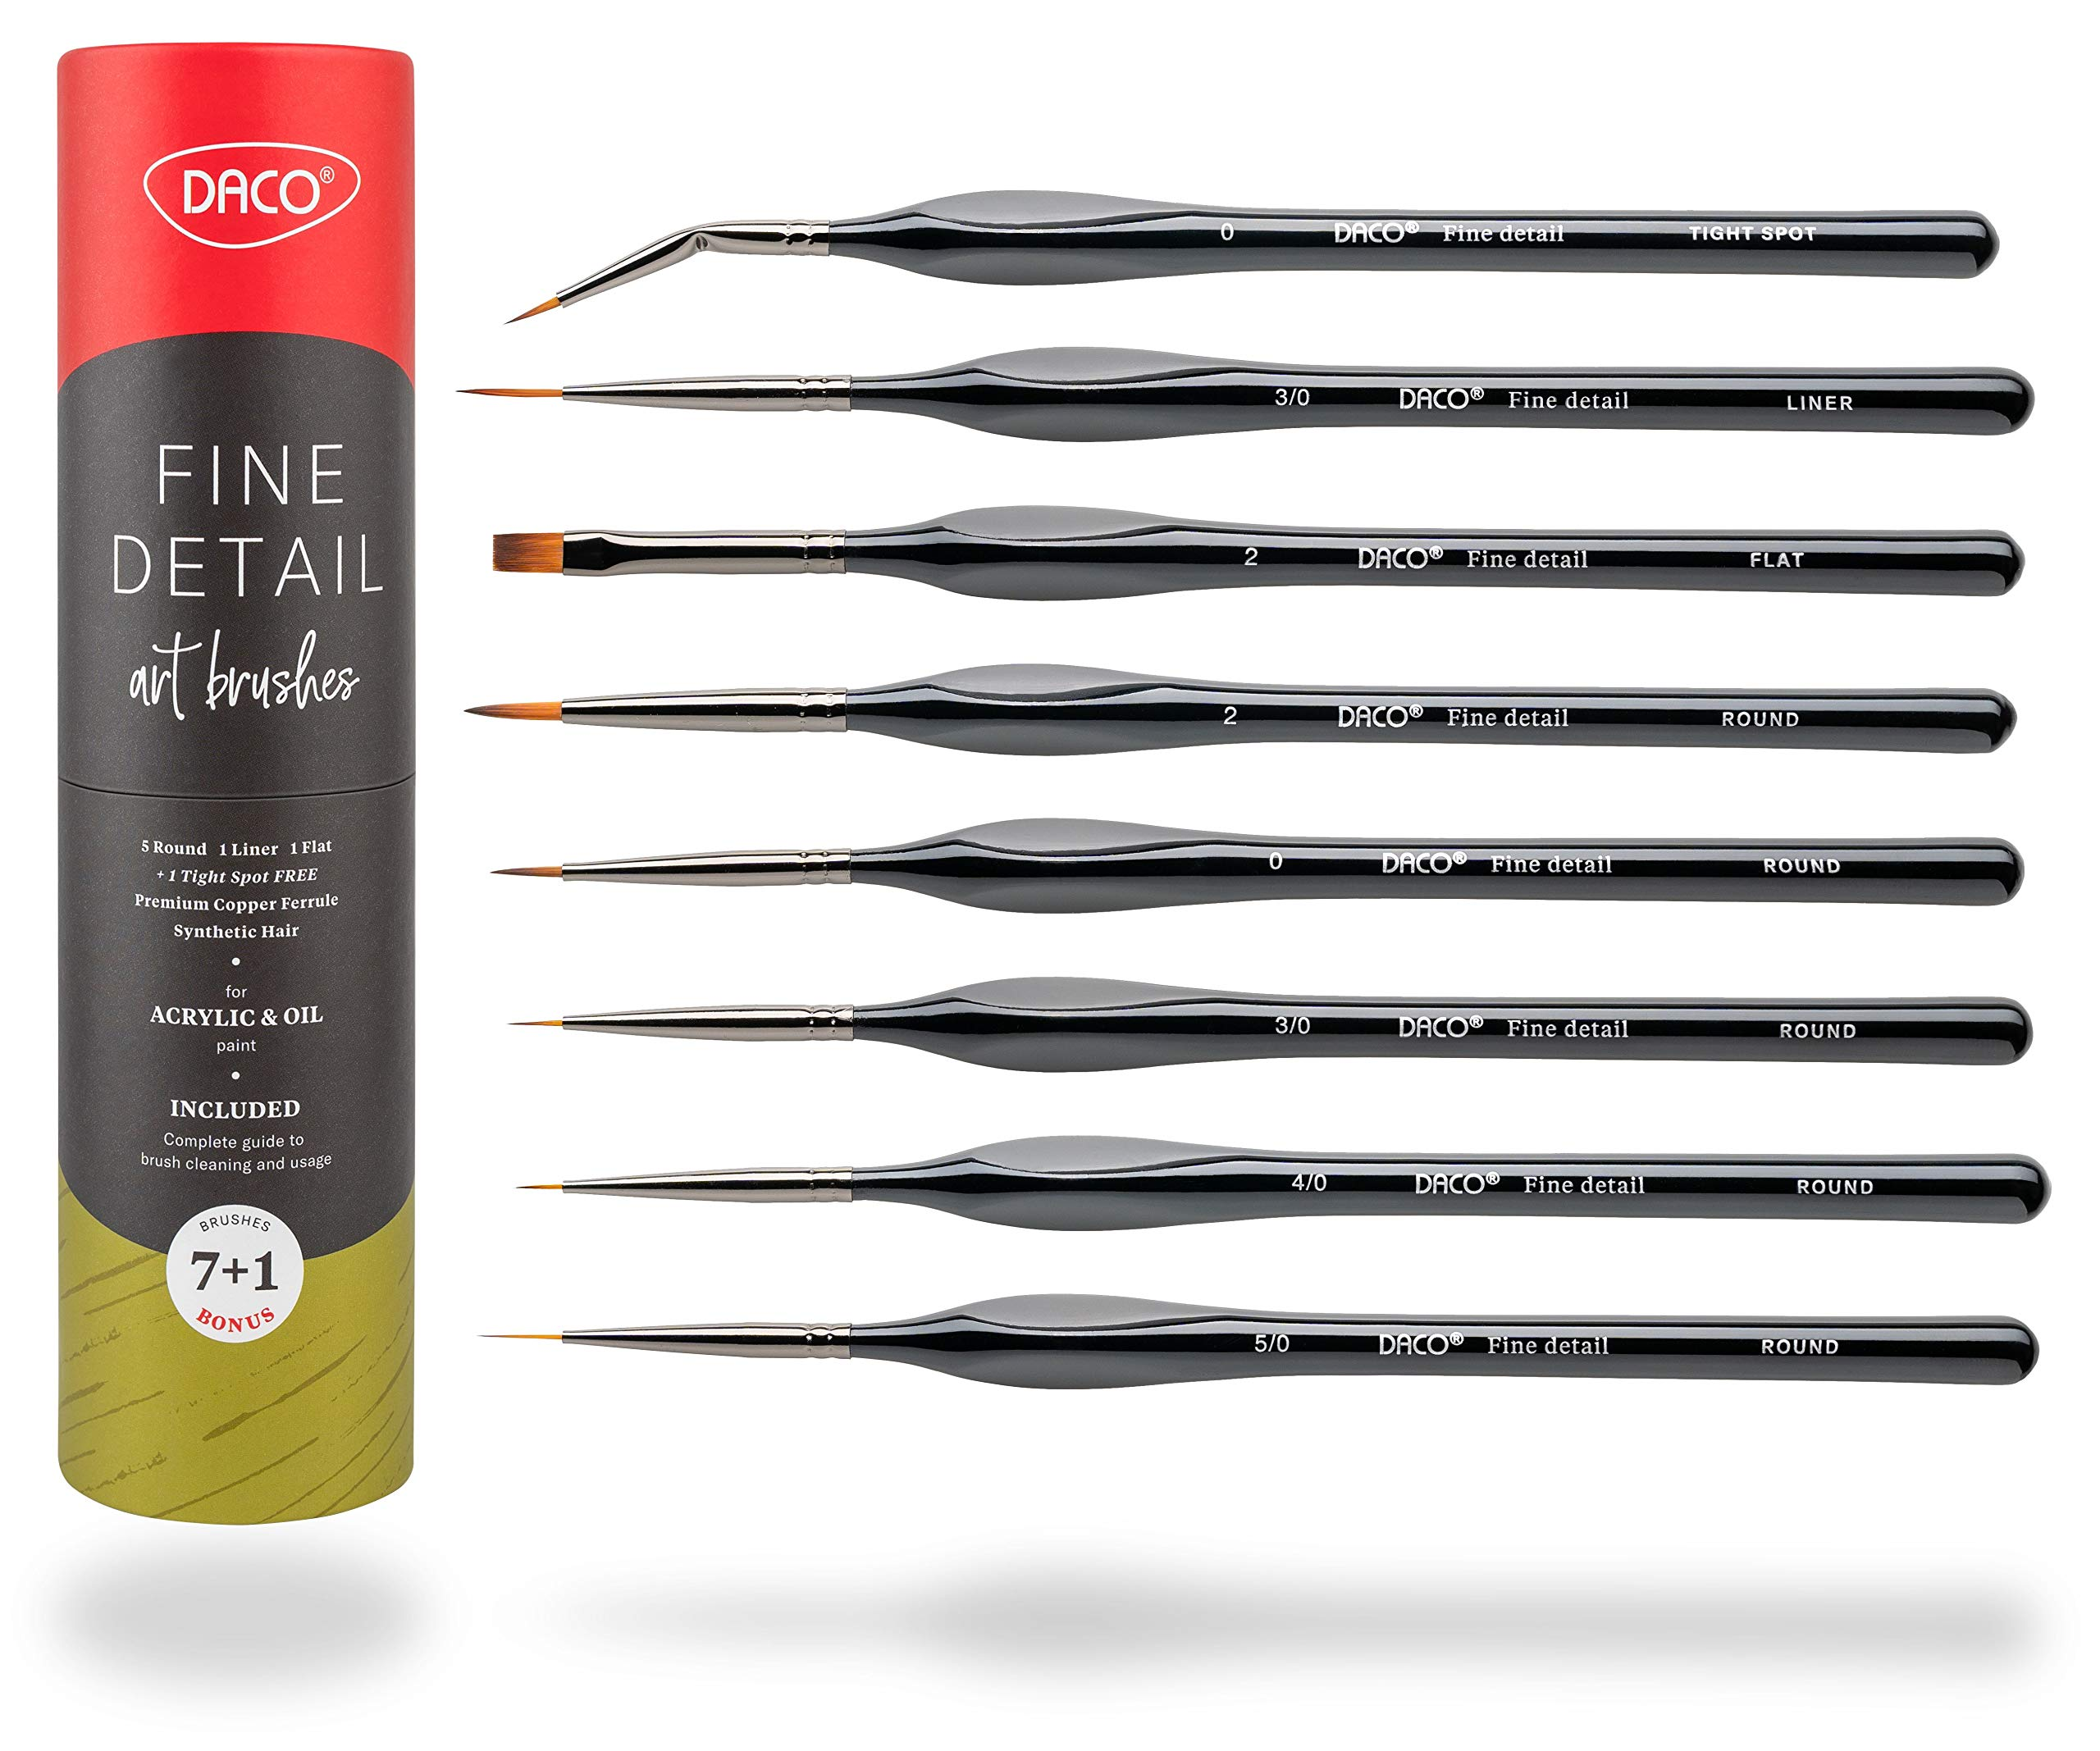 DACO Detail Paint Brush Set, 7pcs +1 Fine Miniature Paint Brushes Kit with Ergonomic Handle, Holder and Travel Bag (for Acrylic, Oil, Watercolor, Art, Scale Model, Face, Paint by Numbers) by DACO